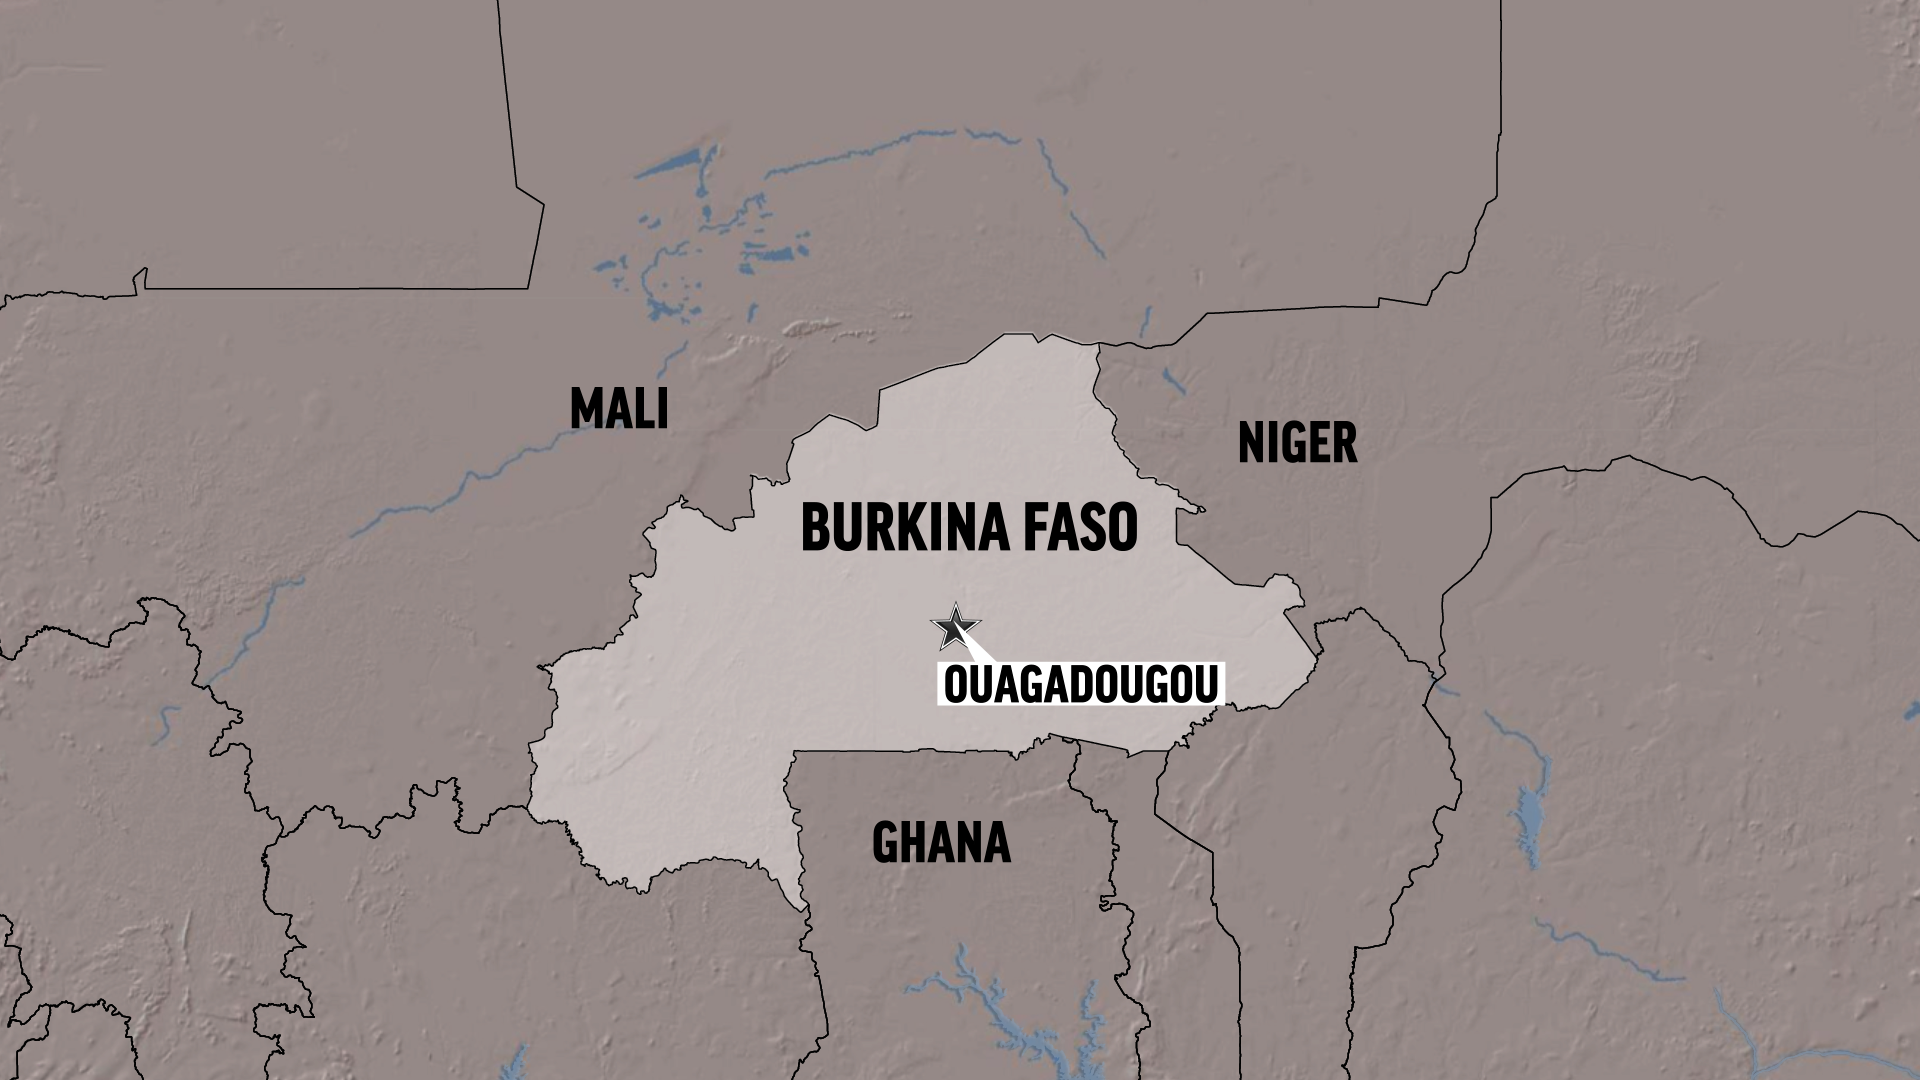 Gunmen kill 17 in 'terrorist attack' on Turkish restaurant in Burkina Faso